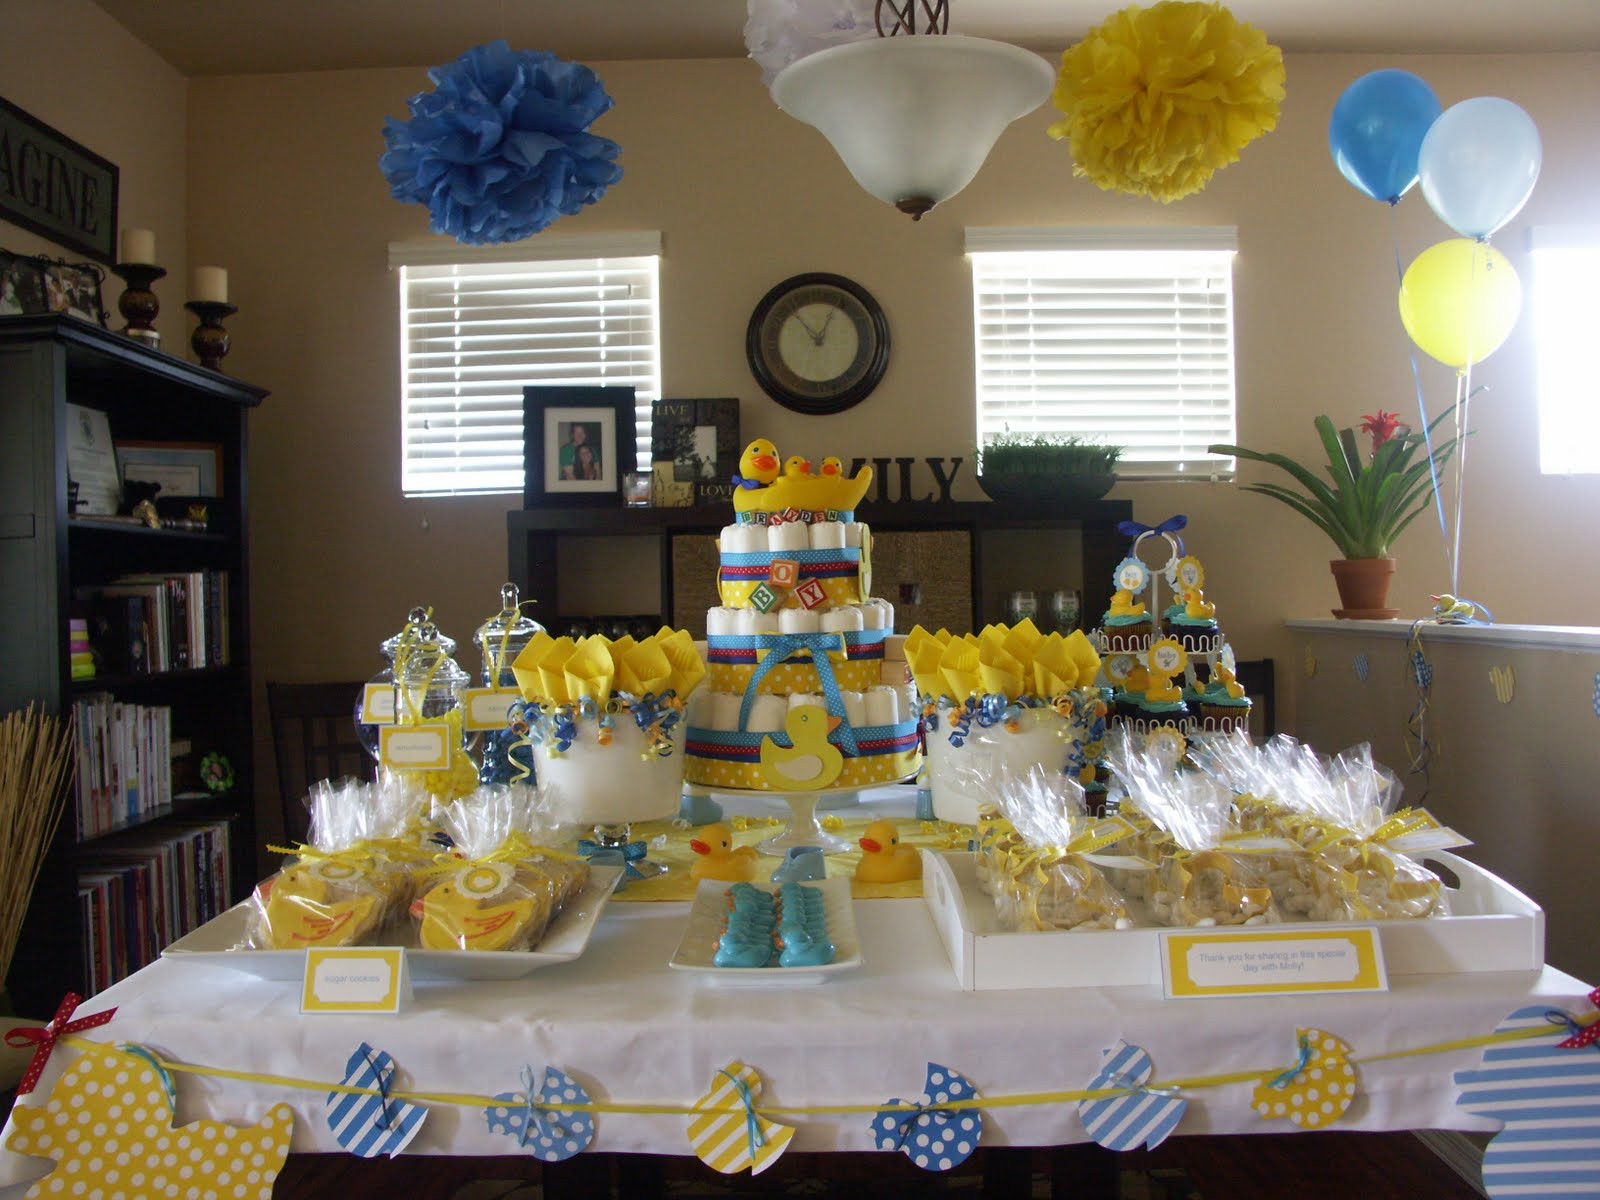 Baby Shower Decoration Ideas At Home  Rubber Ducky Baby Shower Decoration Ideas